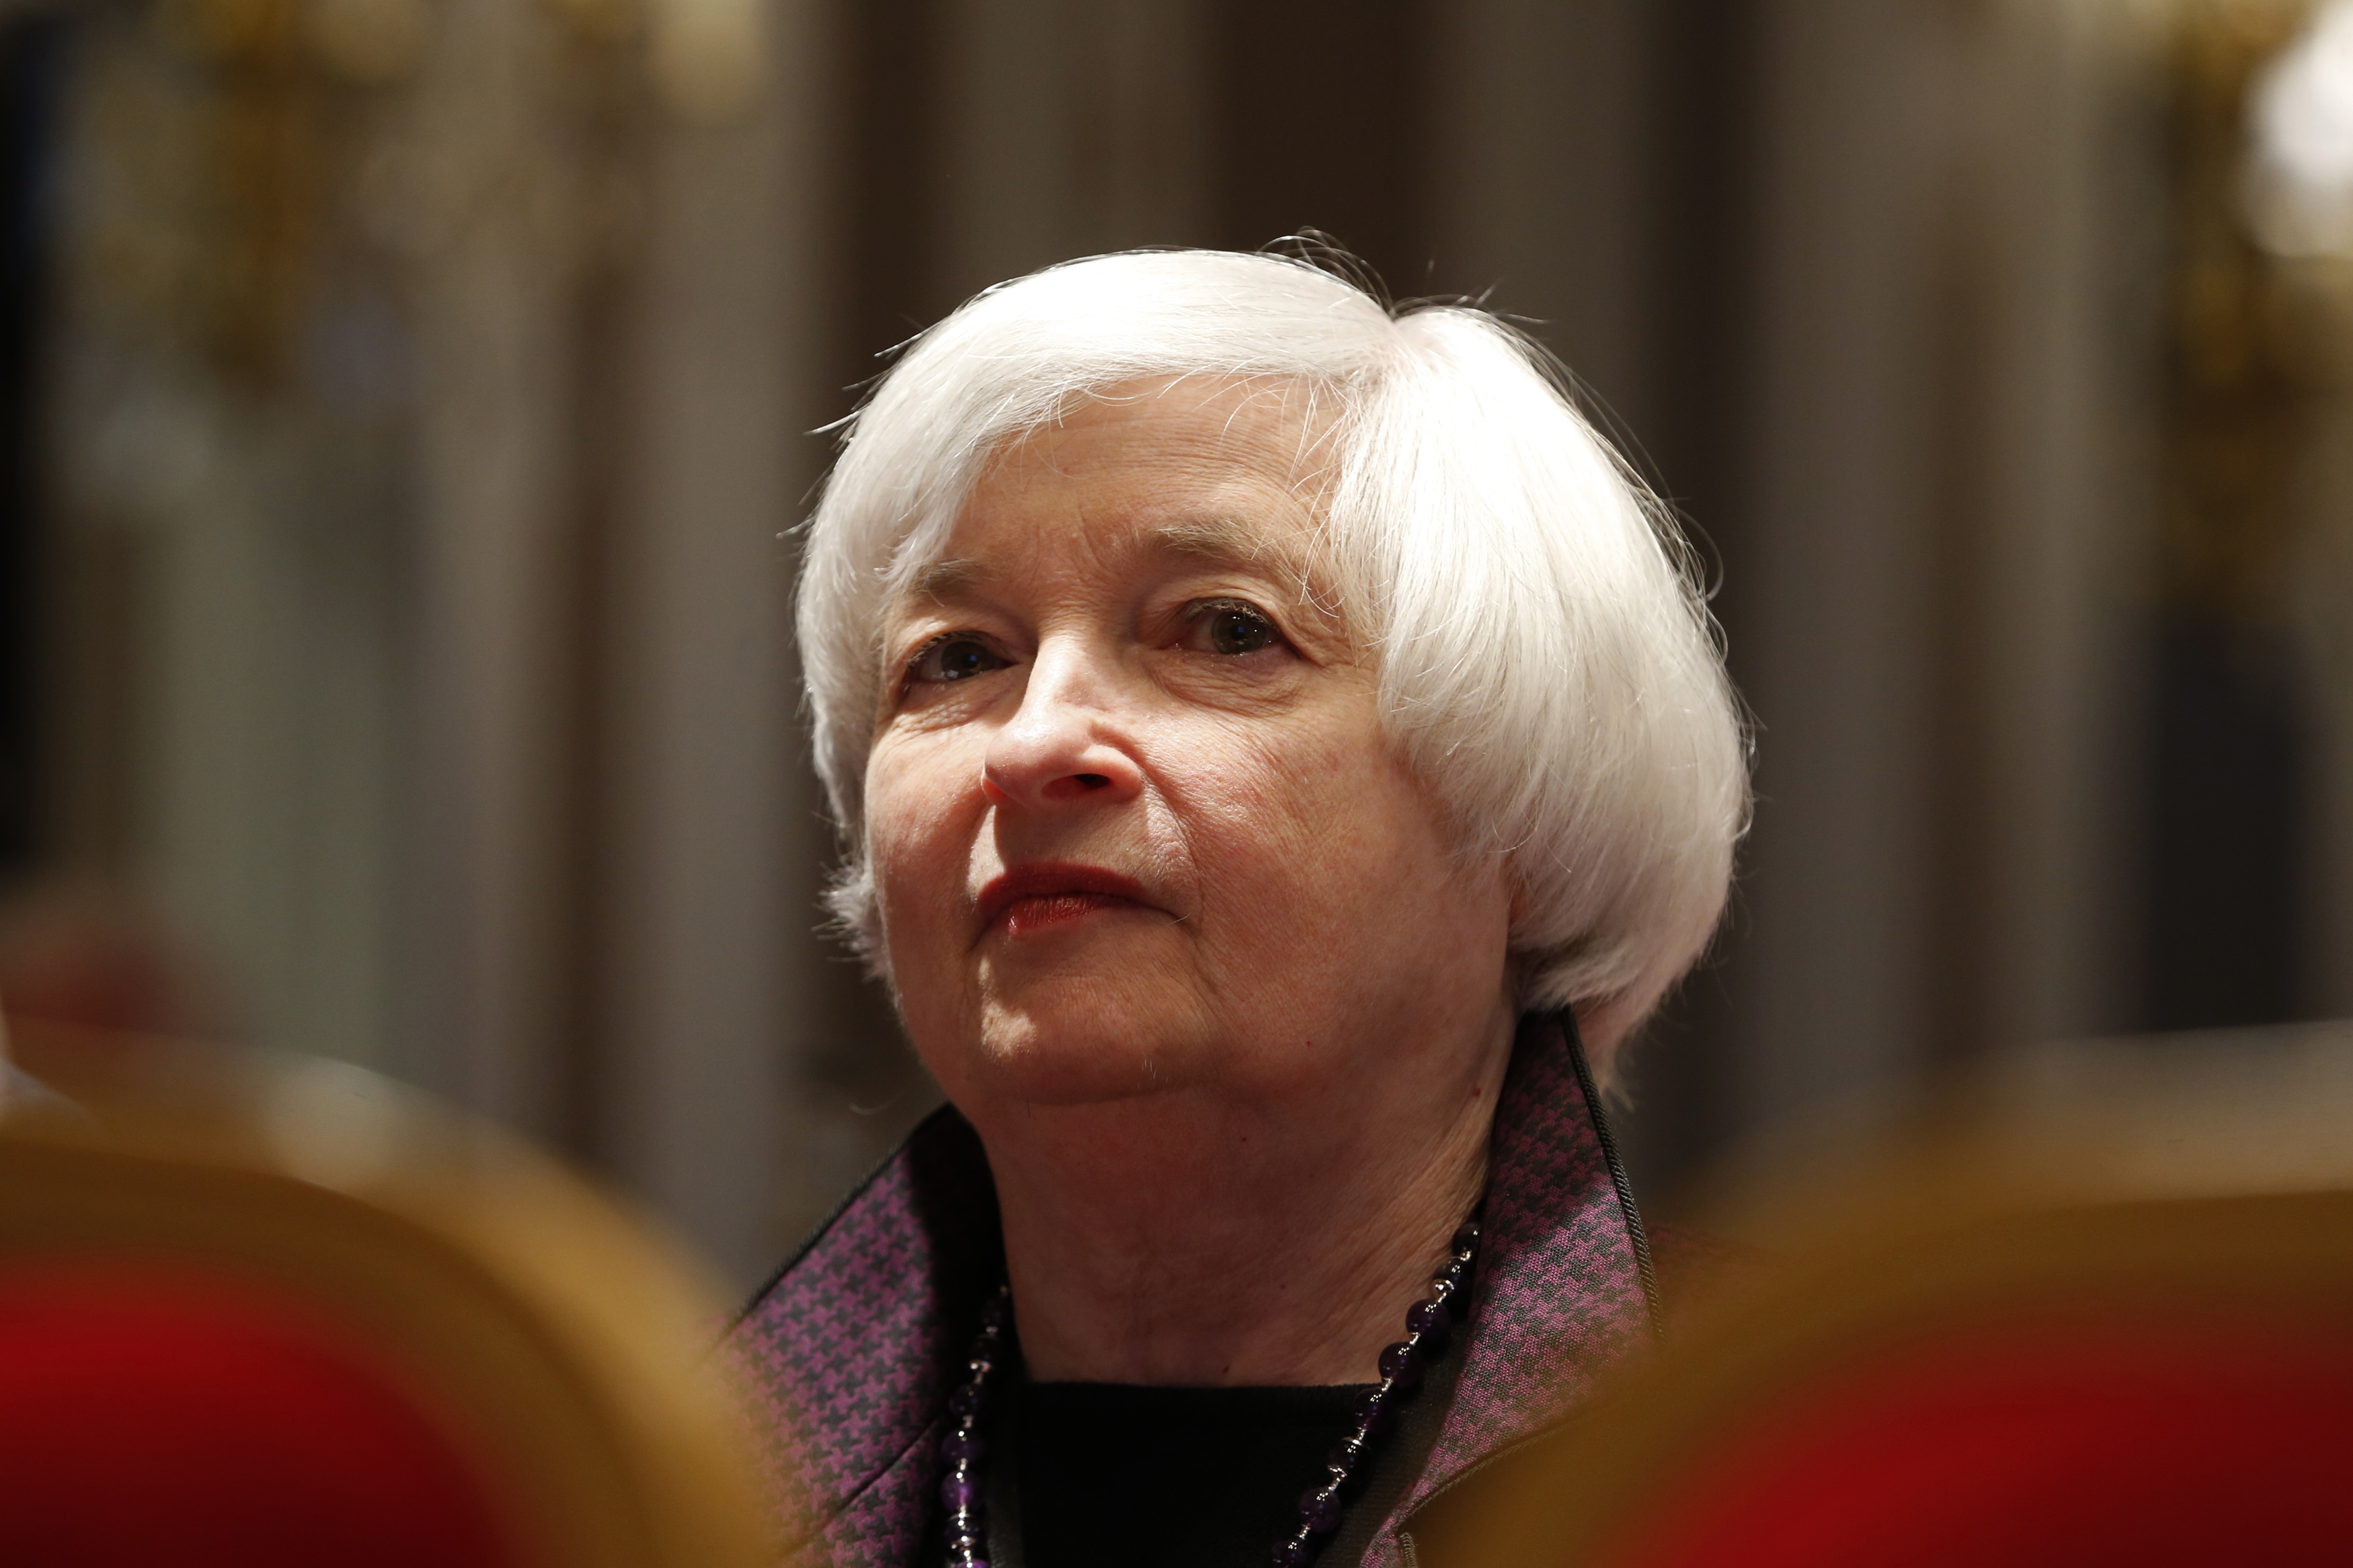 U.S. Federal Reserve Chair Janet Yellen attends a conference of central bankers hosted by the Bank of France in Paris Nov. 7, 2014